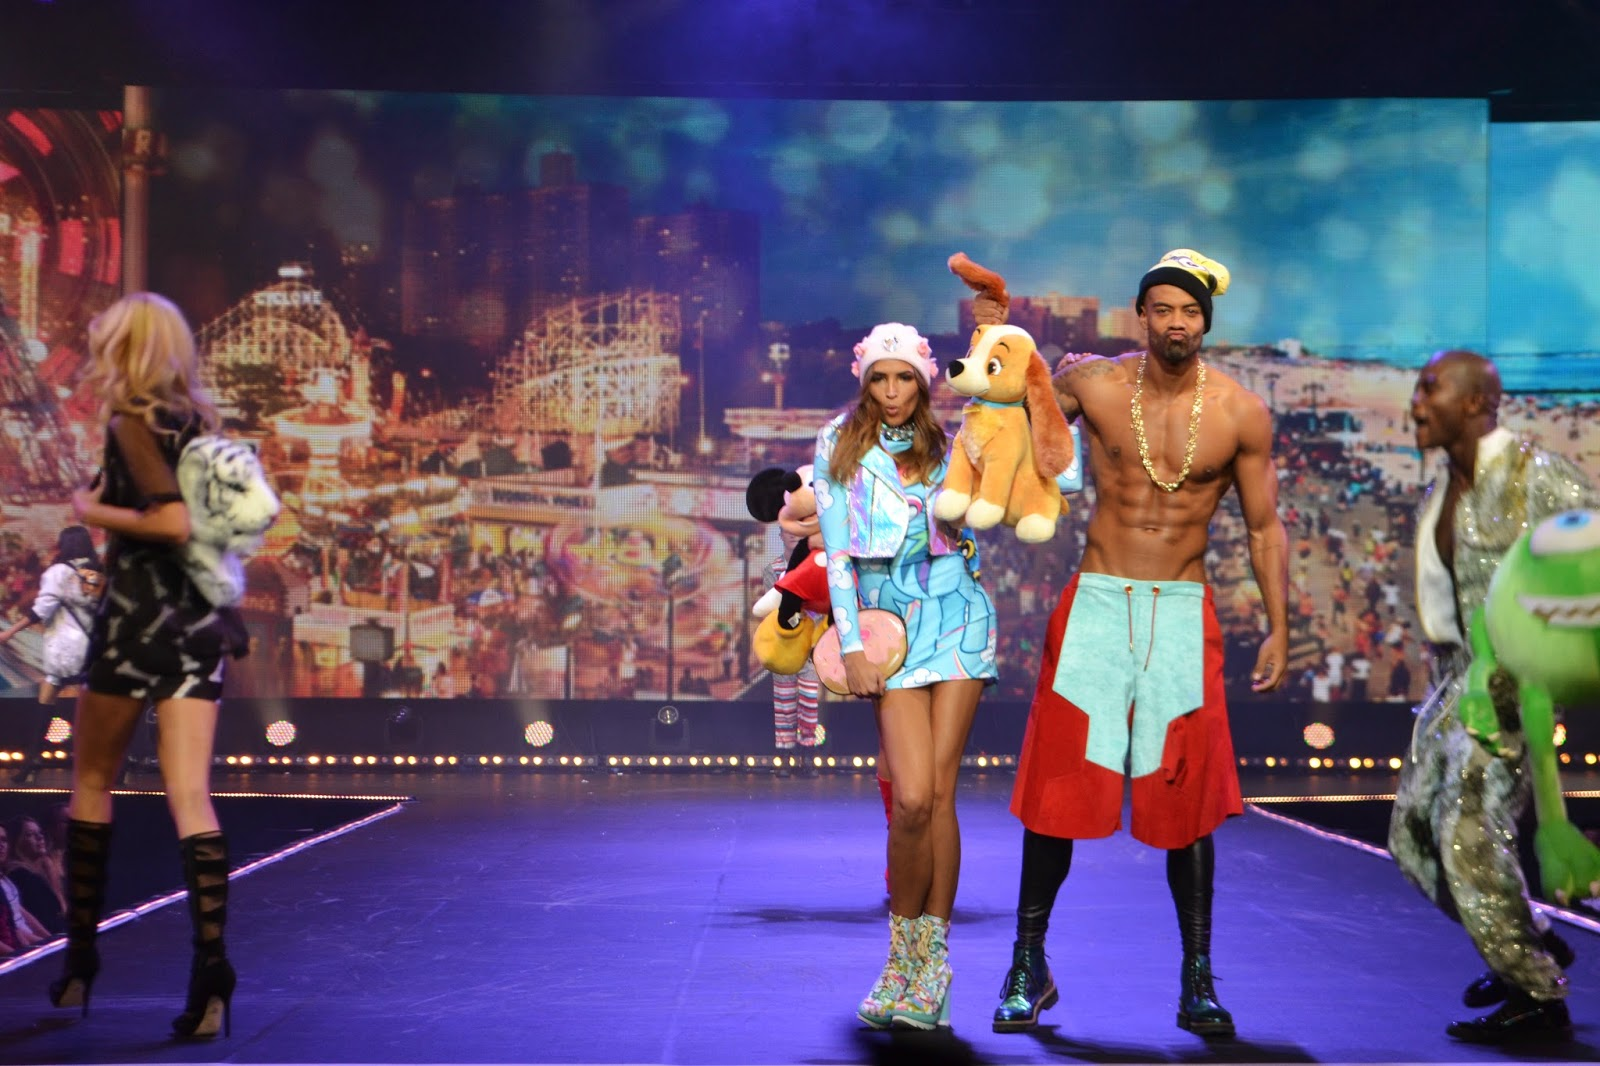 multiple models on stage wearing disney themed clothing